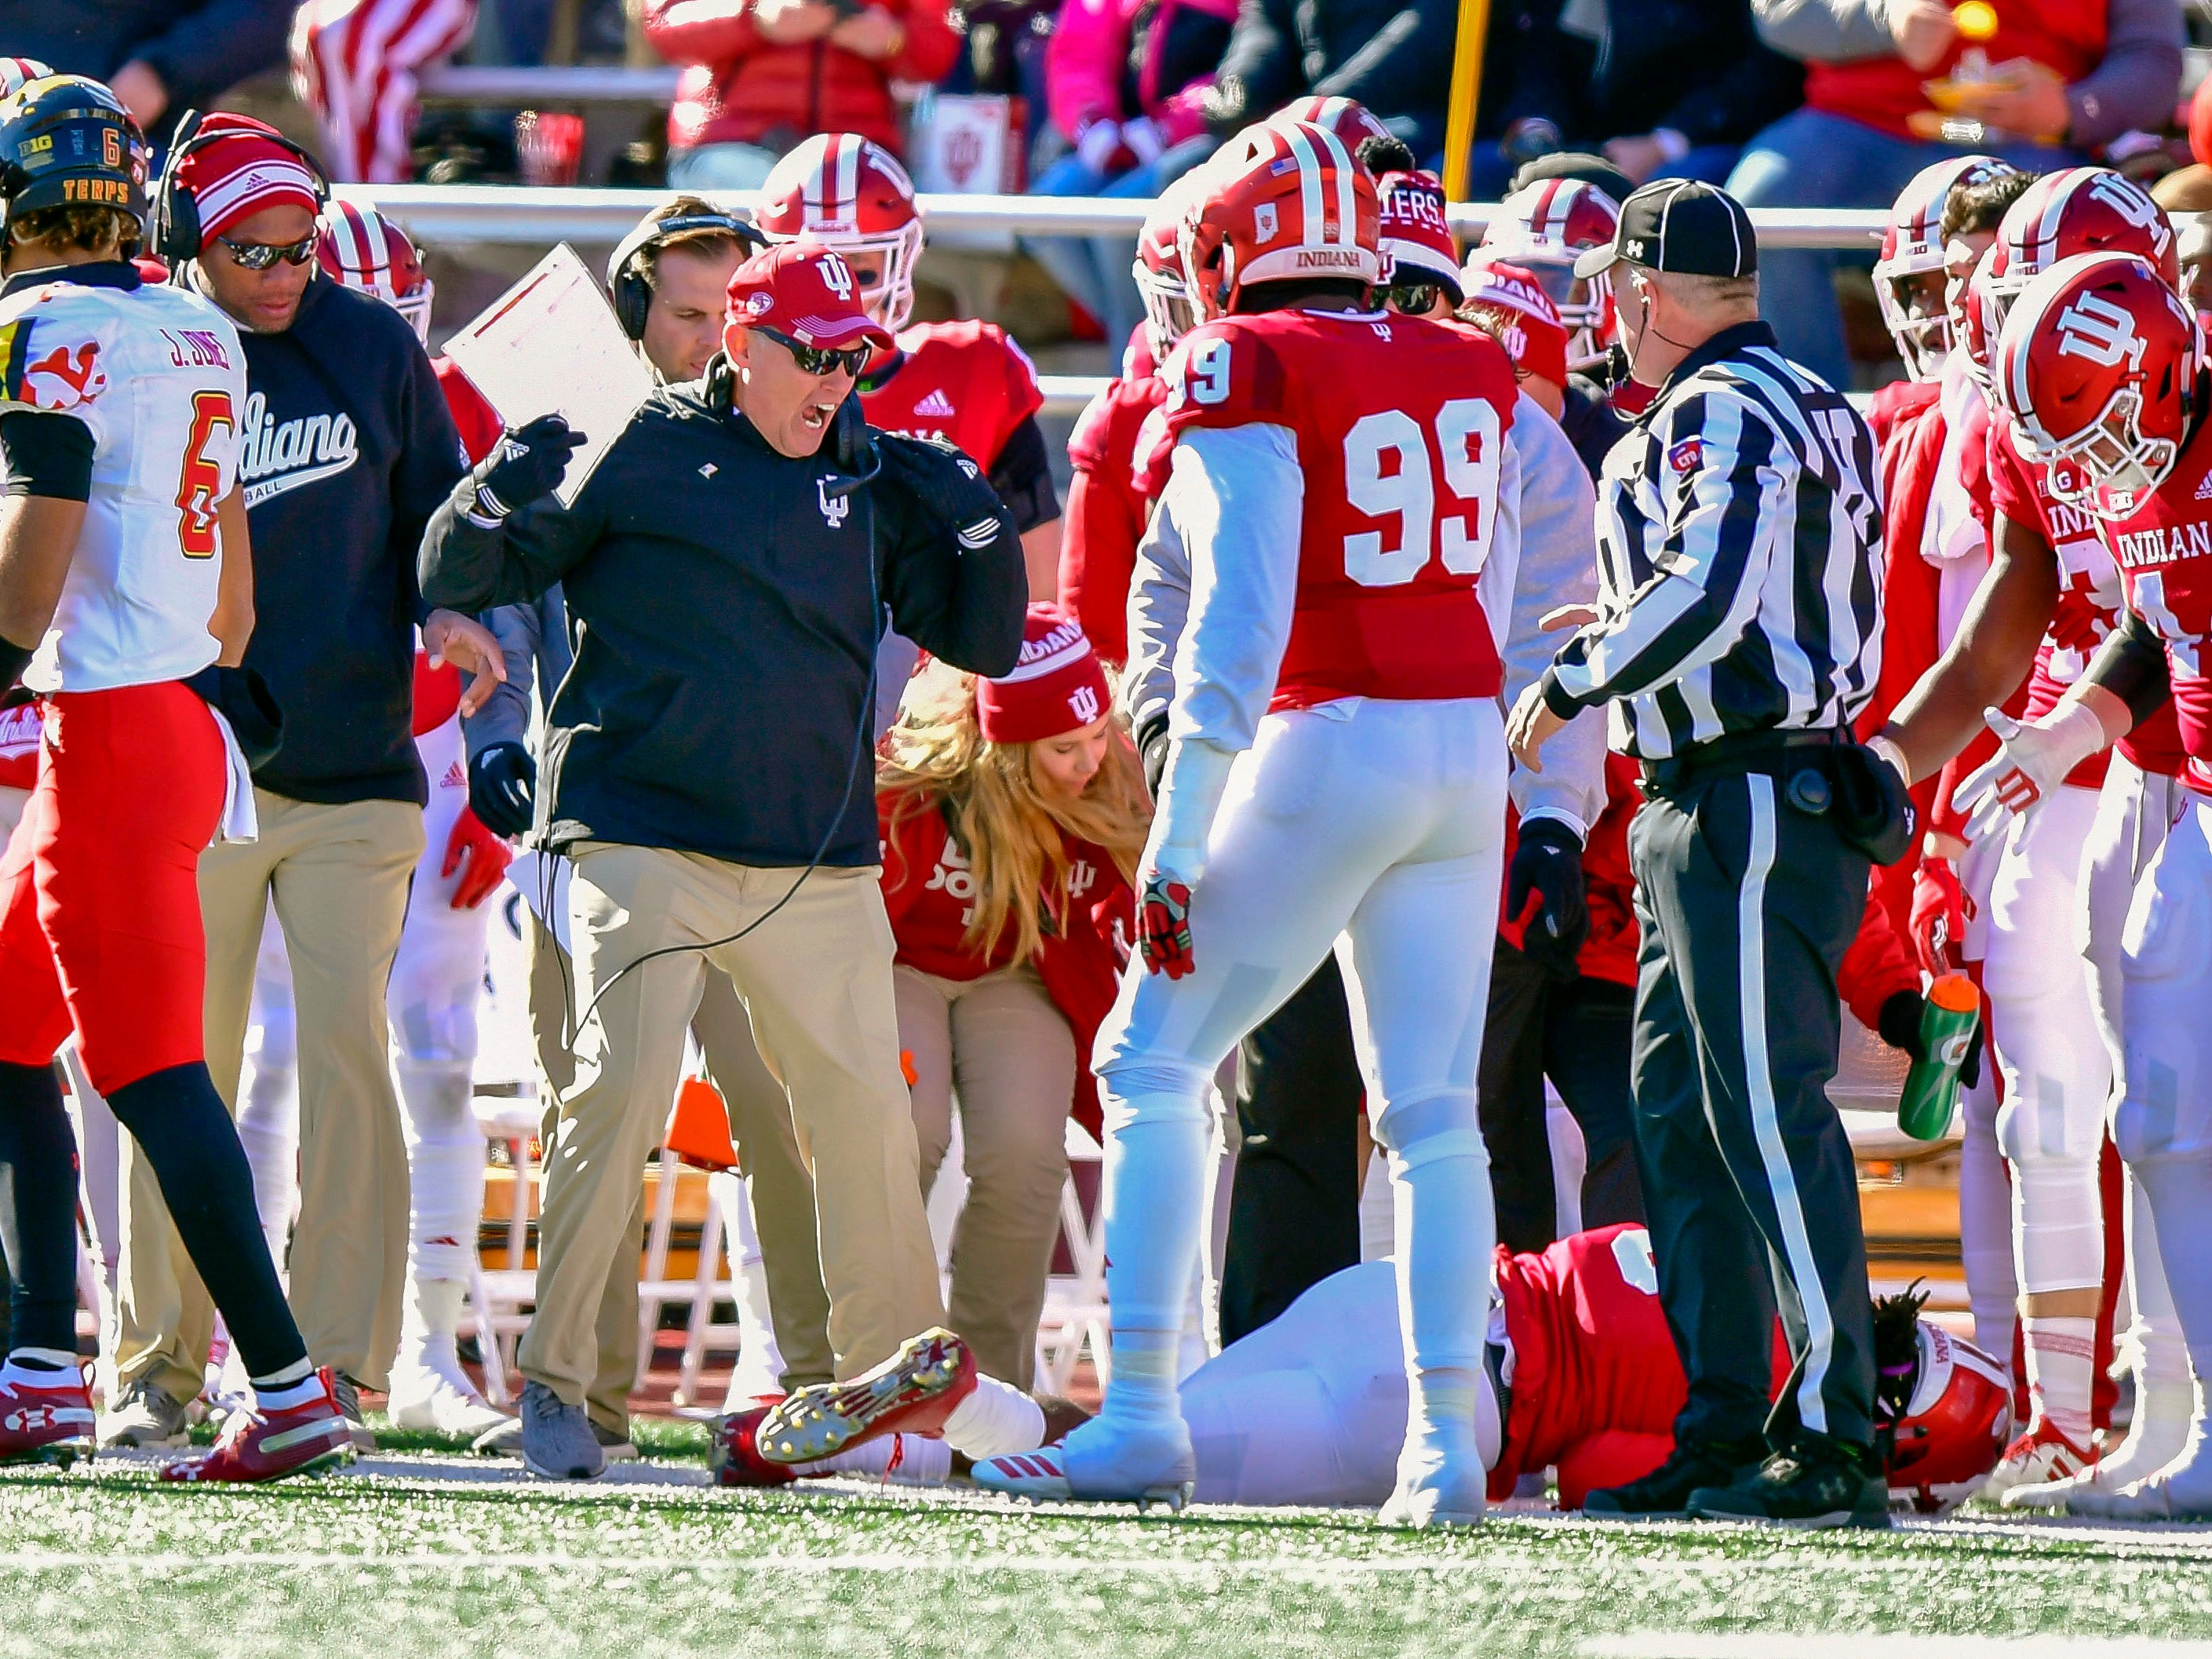 Hoosiers head coach Tom Allen reacts to a player sliding out of bounds into his team during the fist half of the the game against the Maryland Terrapins at Memorial Stadium.